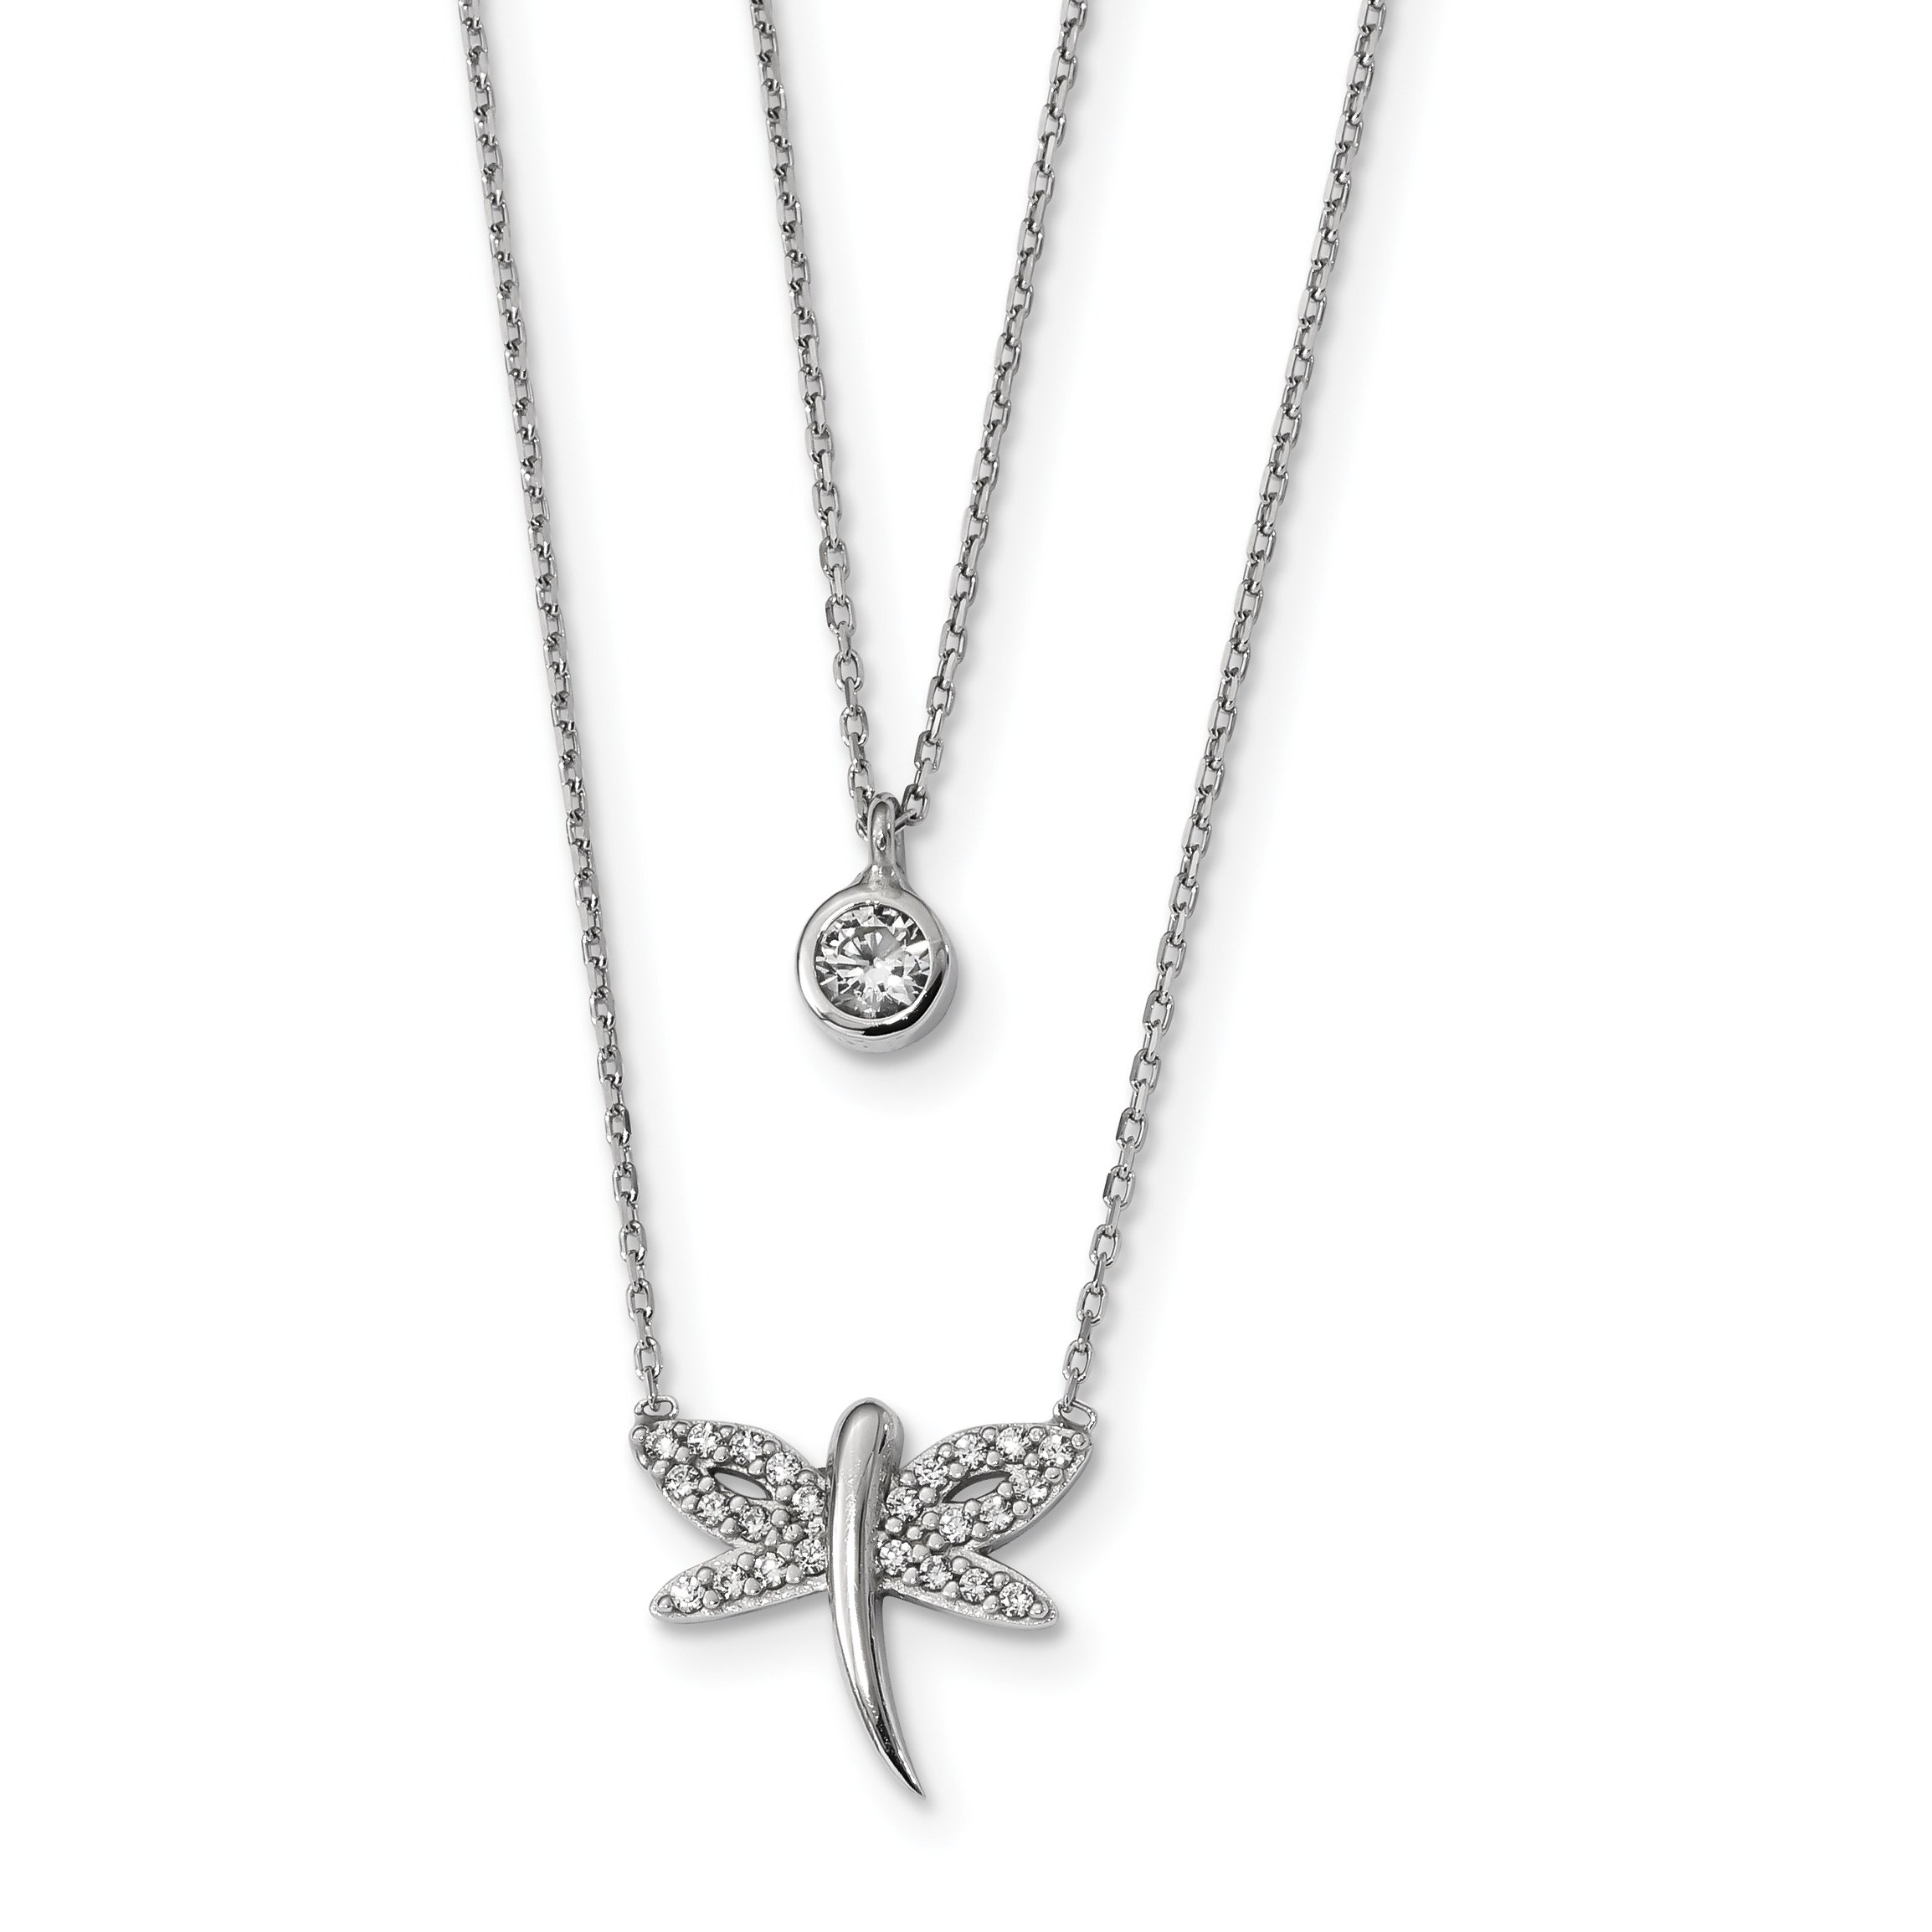 ICE CARATS 925 Sterling Silver Double Strand Cubic Zirconia Cz Dragonfly Chain Necklace Animals/insect Fine Jewelry Gift For Women Heart